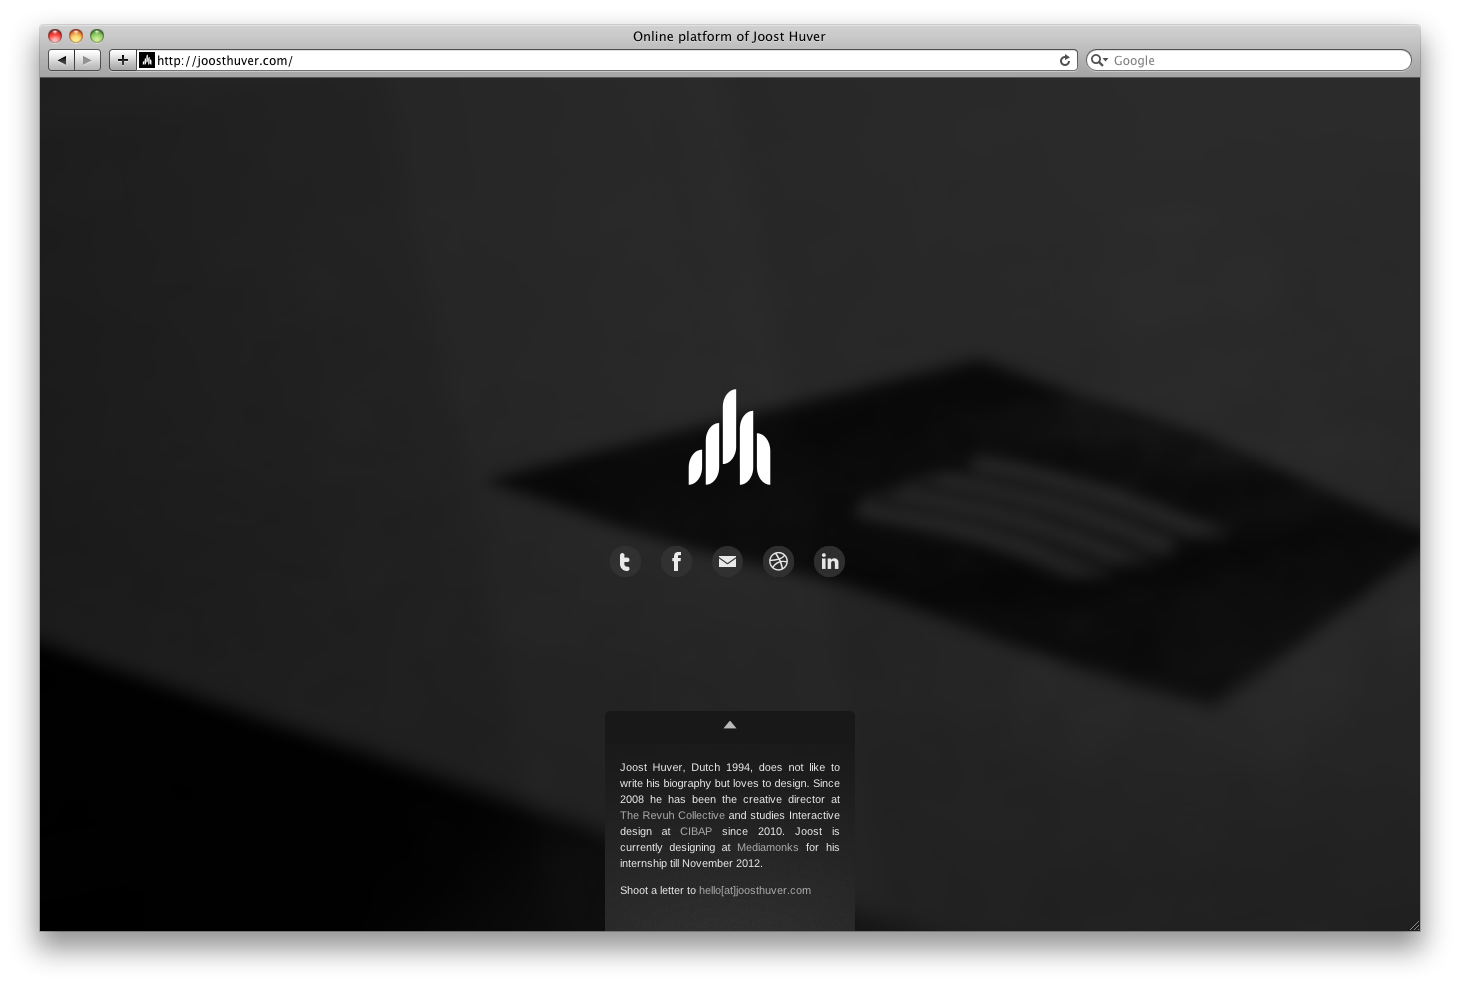 Online Platform of Joost Huver Website Screenshot